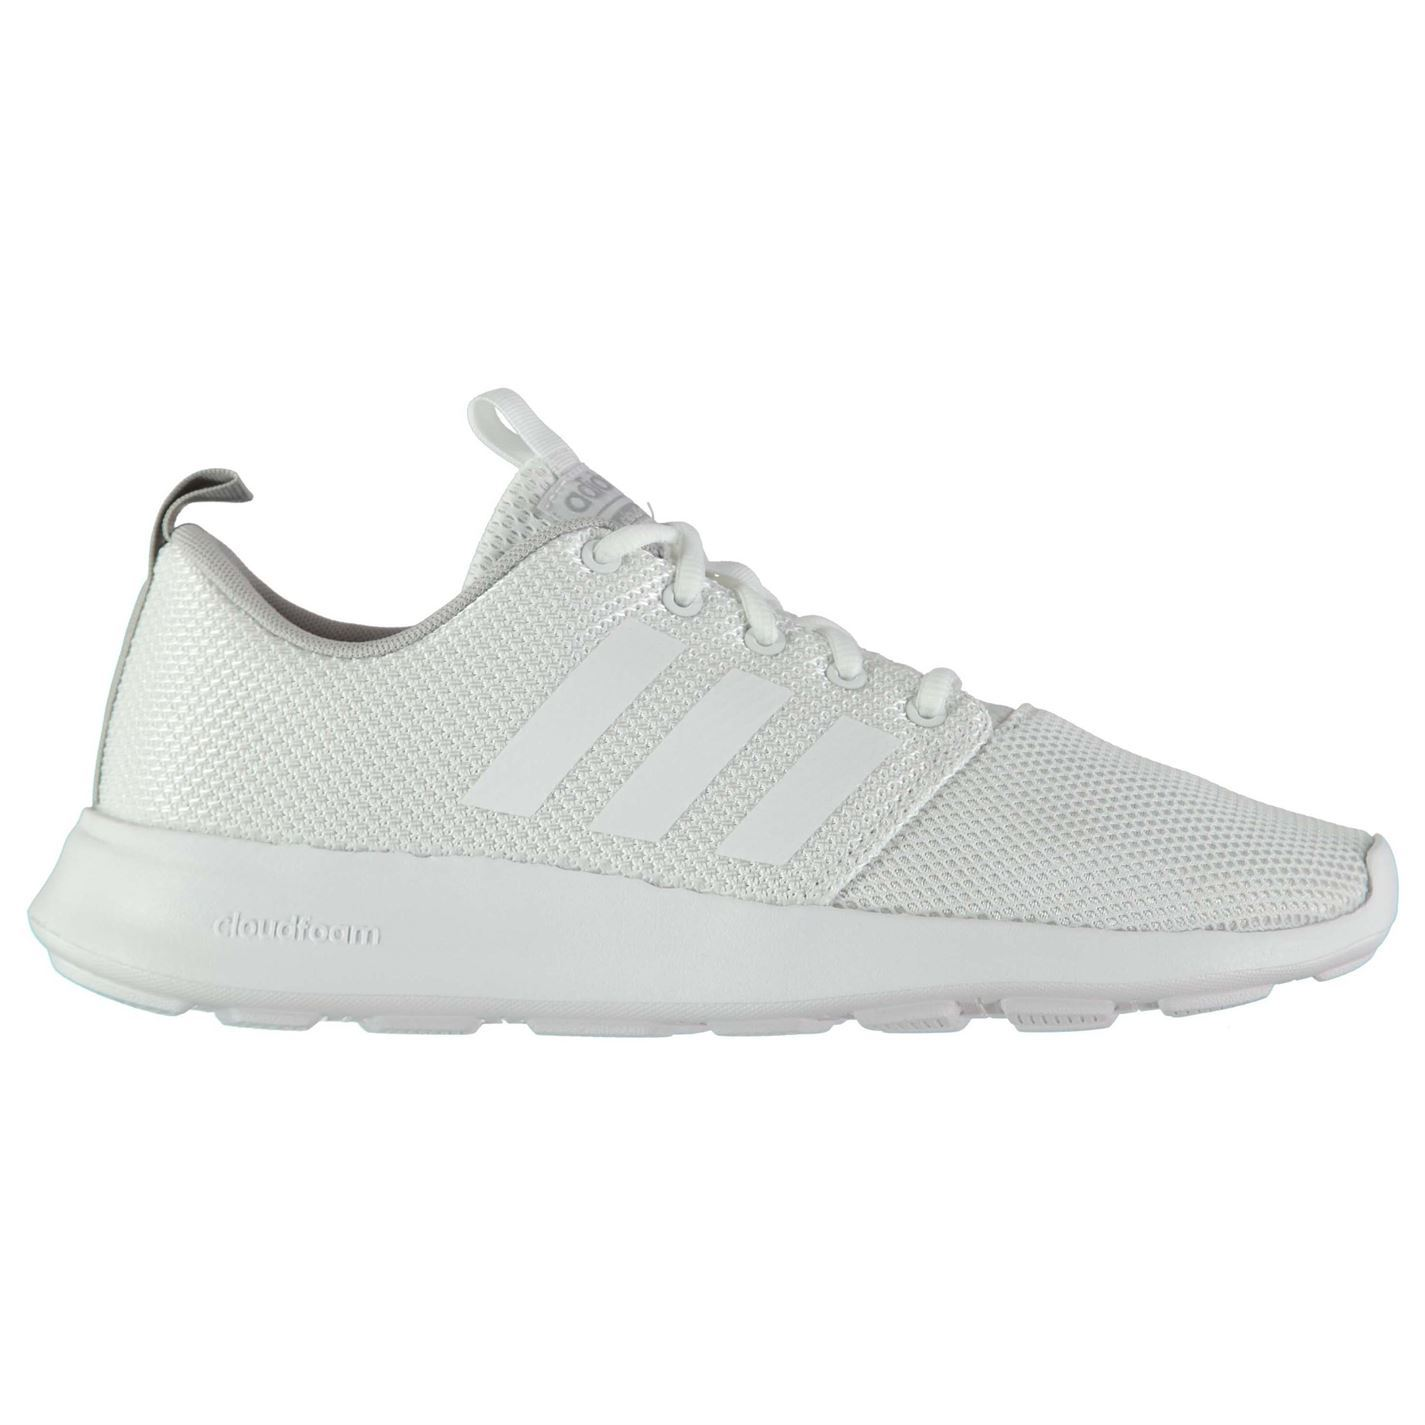 ... adidas Cloudfoam Swift Racer Trainers Mens White Athletic Sneakers  Shoes ... 4fa393c28